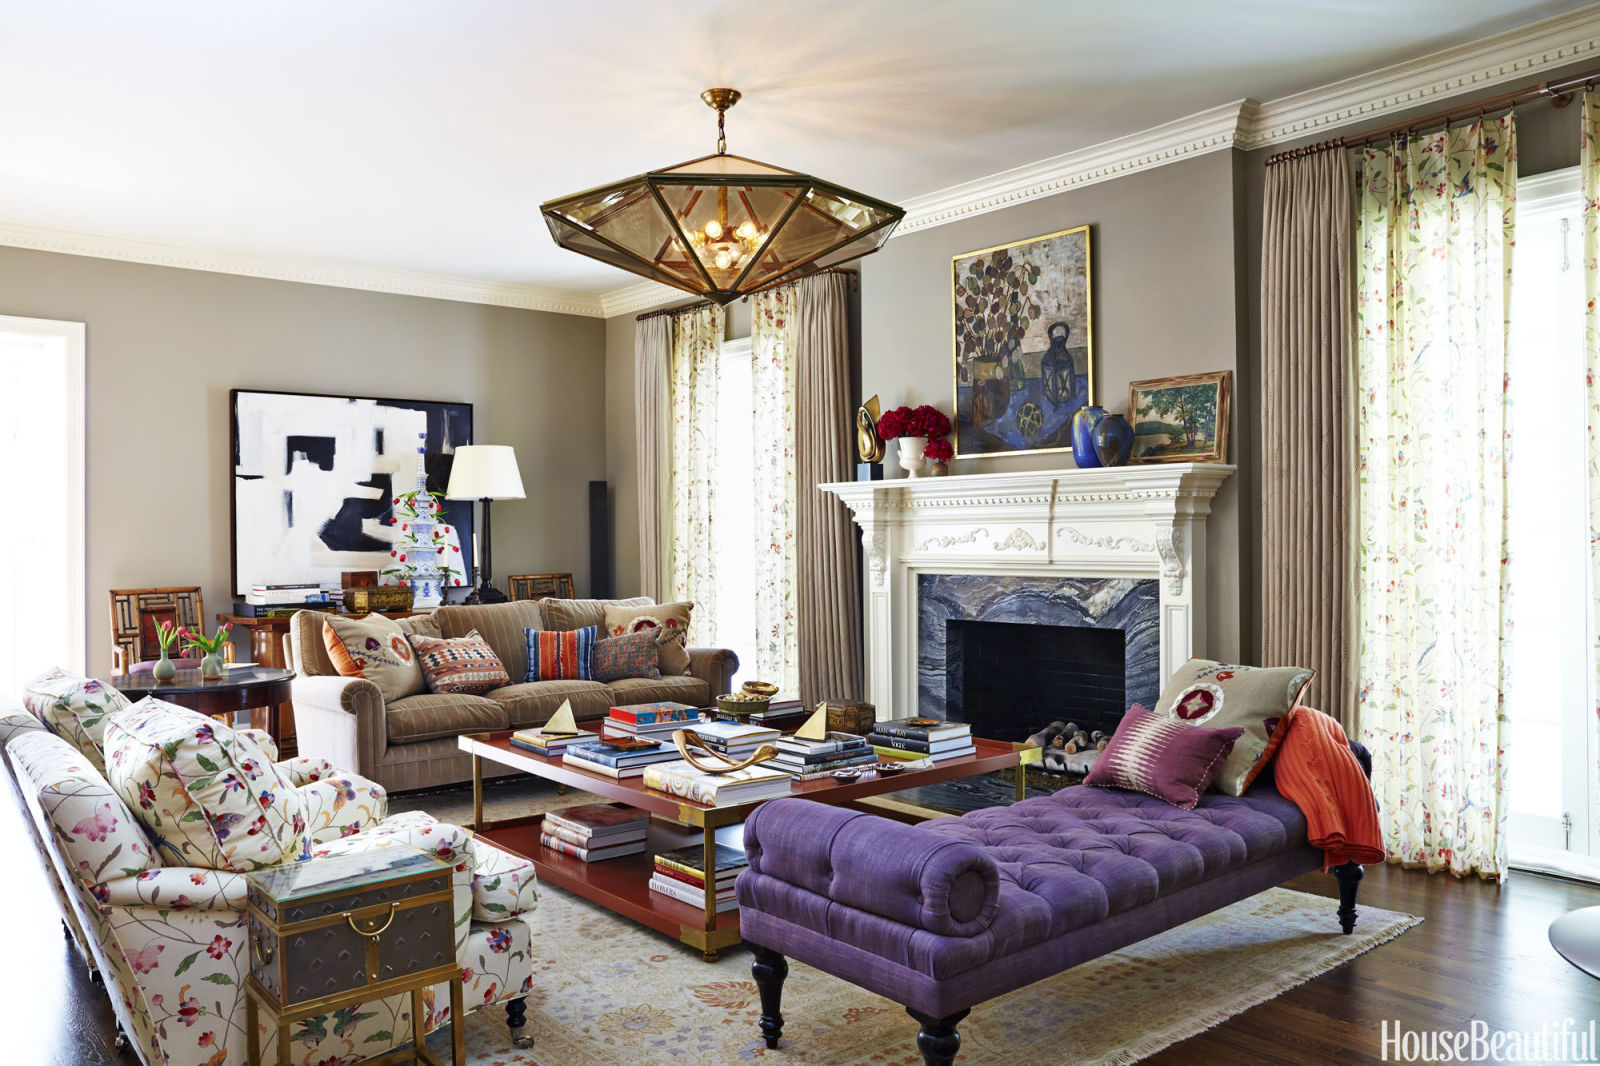 a 1930s bel air home colorful california home